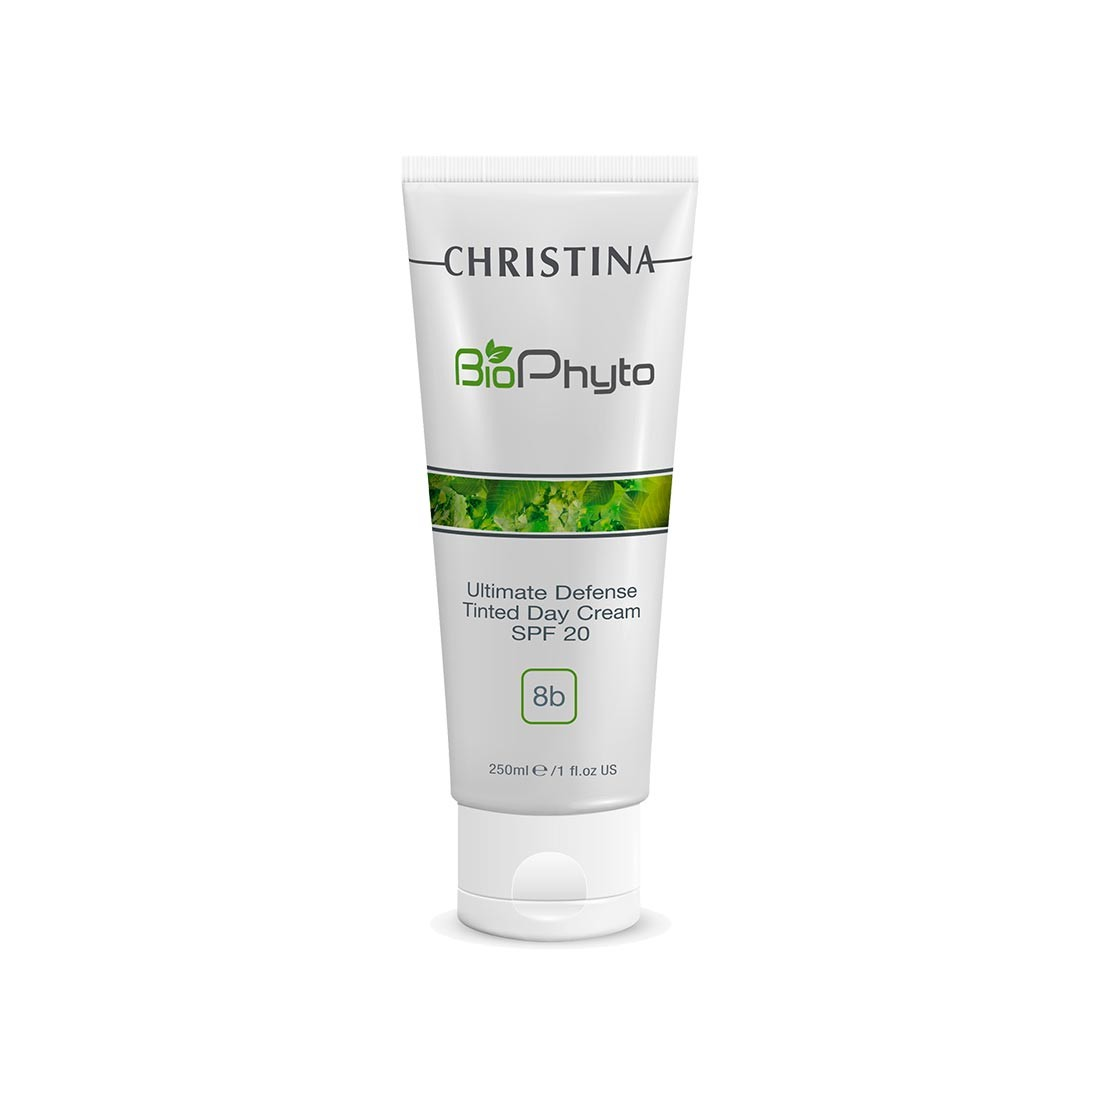 Christina Дневной крем Абсолютная защита SPF 20 с тоном Bio Phyto Ultimate Defense Tinted Day Cream SPF 75 мл christina крем заатар bio phyto zaatar cream шаг 8a 75 мл